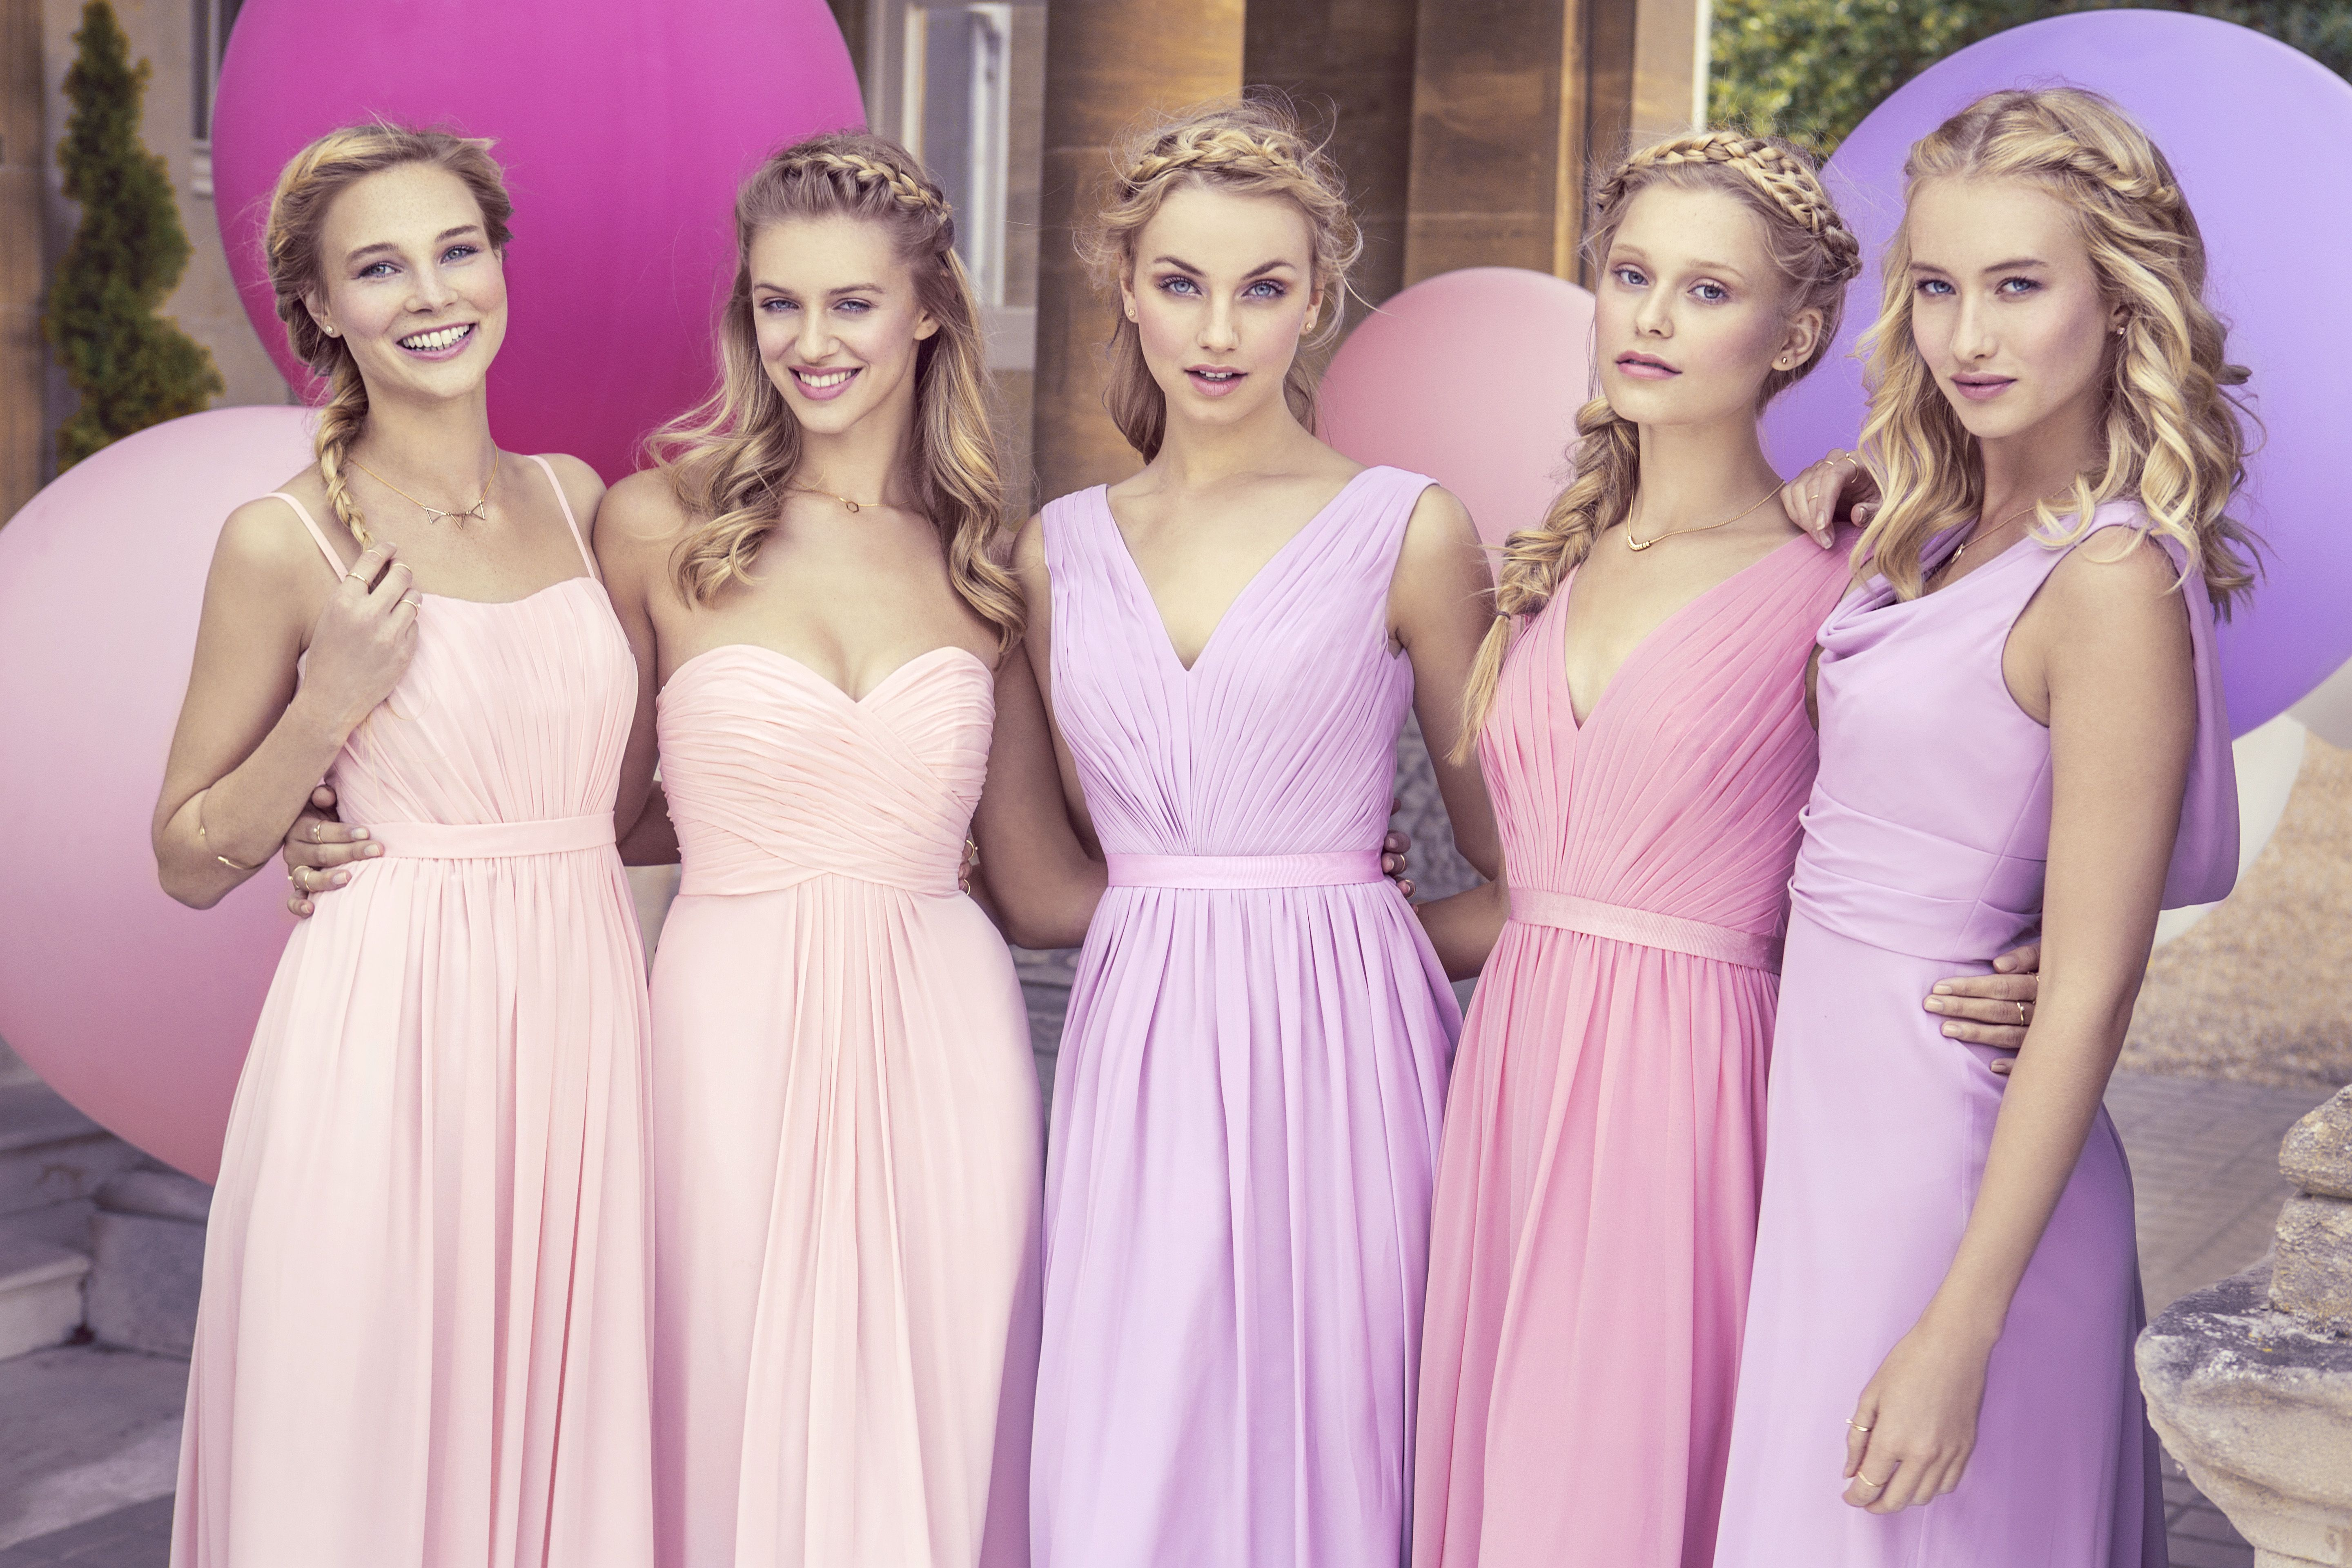 Kelsey Rose 2015 www.kelseyrose.co.uk - bridesmaid dresses | wedding ...